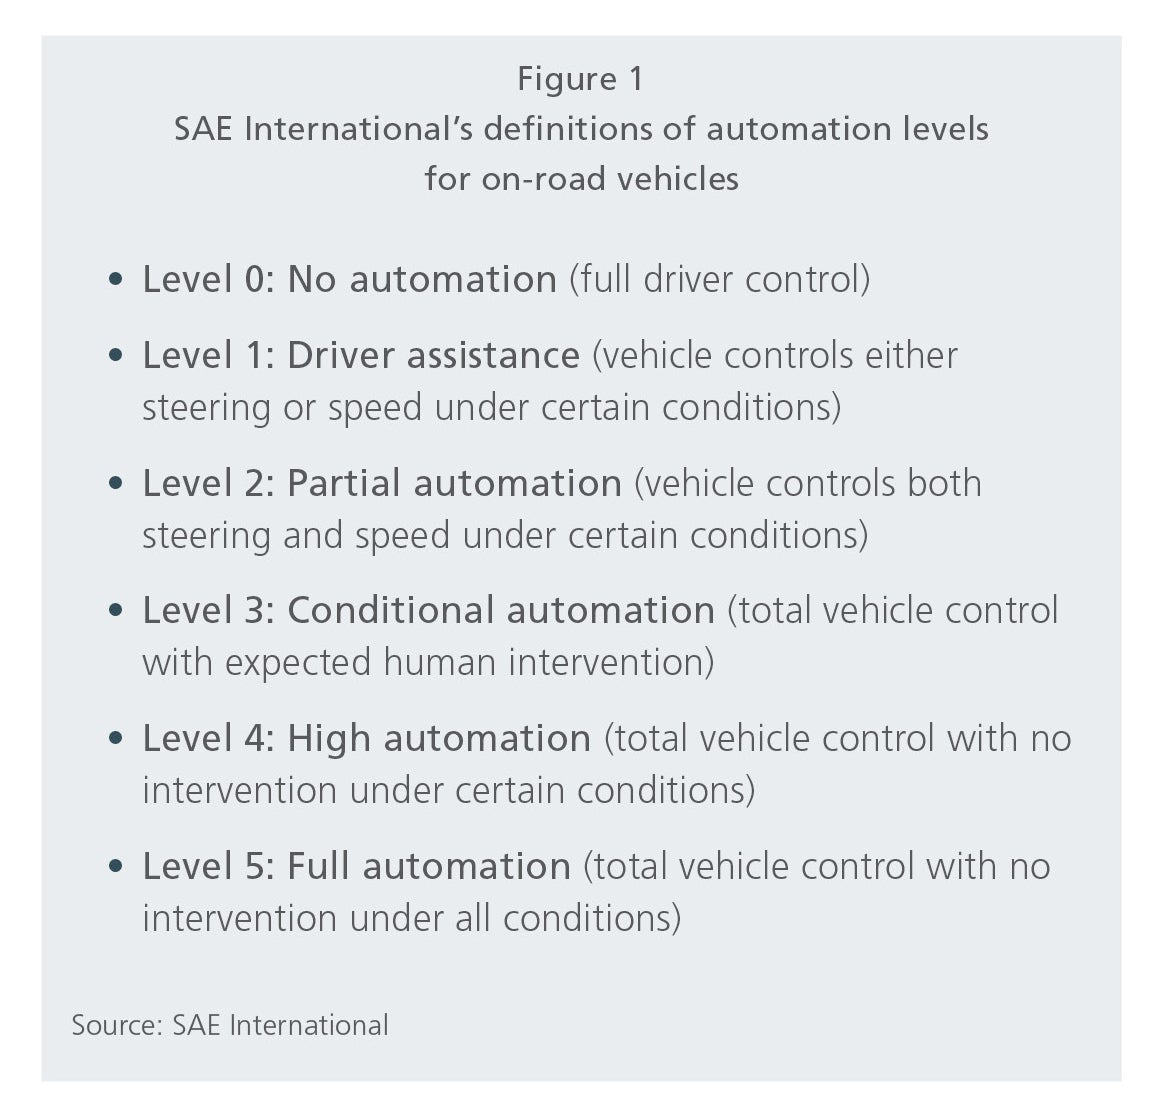 SAE International's definitions of automation levels for on-road vehicles